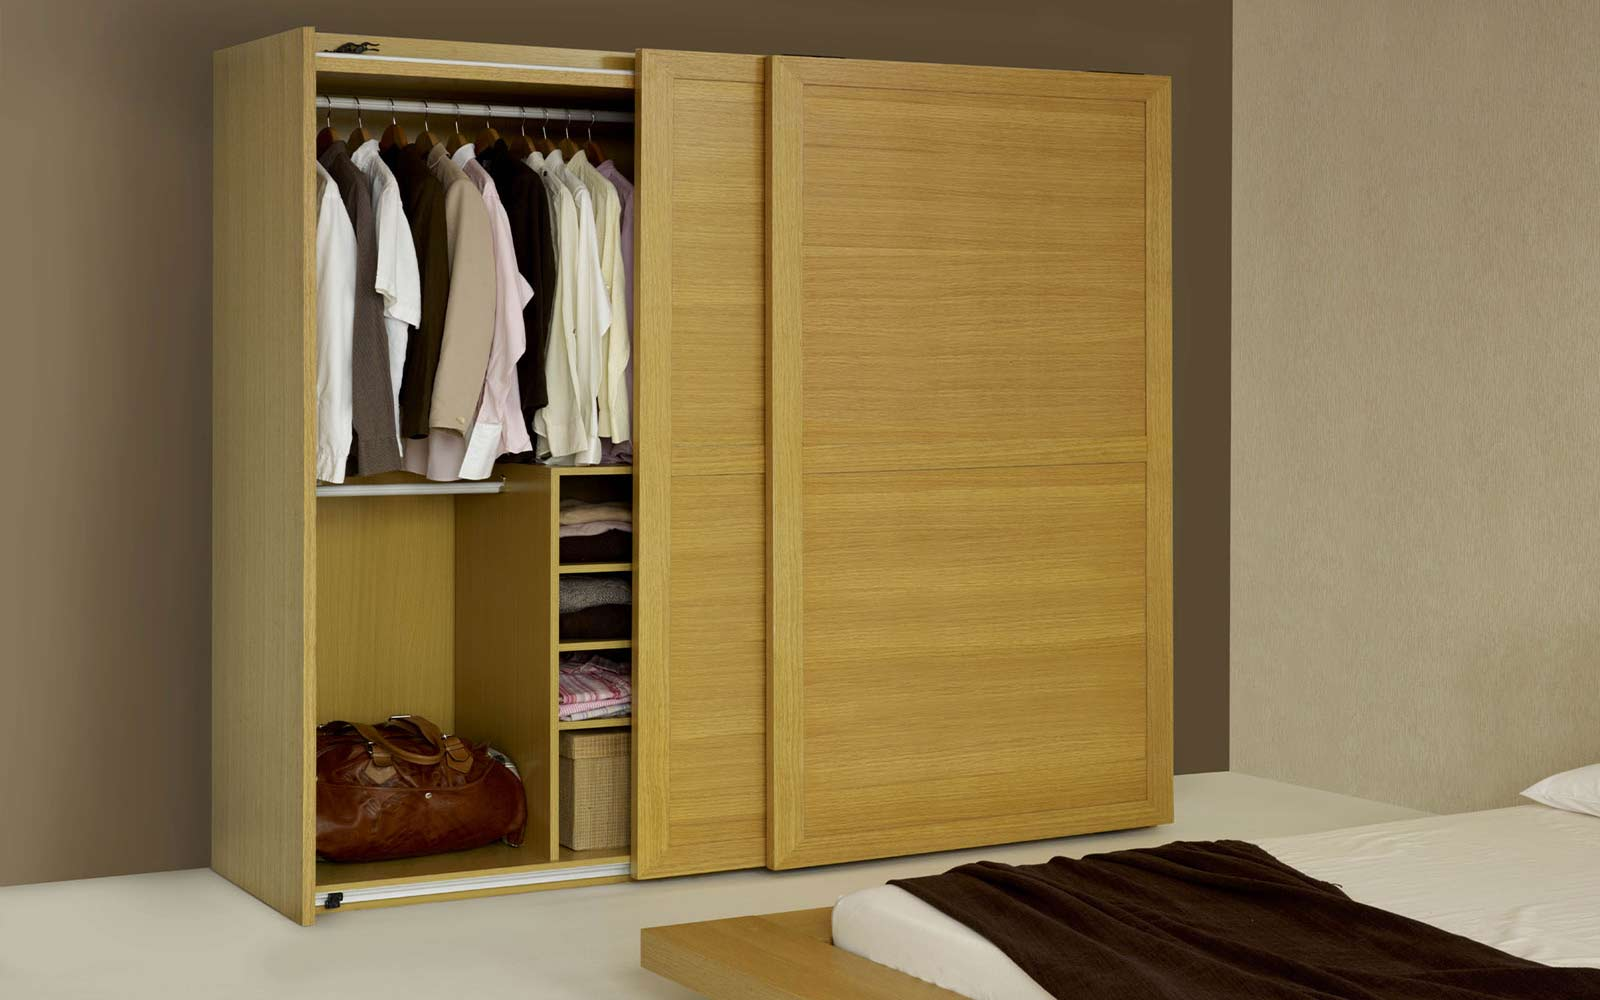 Wardrobe Fittings And Accessories Dealers In Delhi India